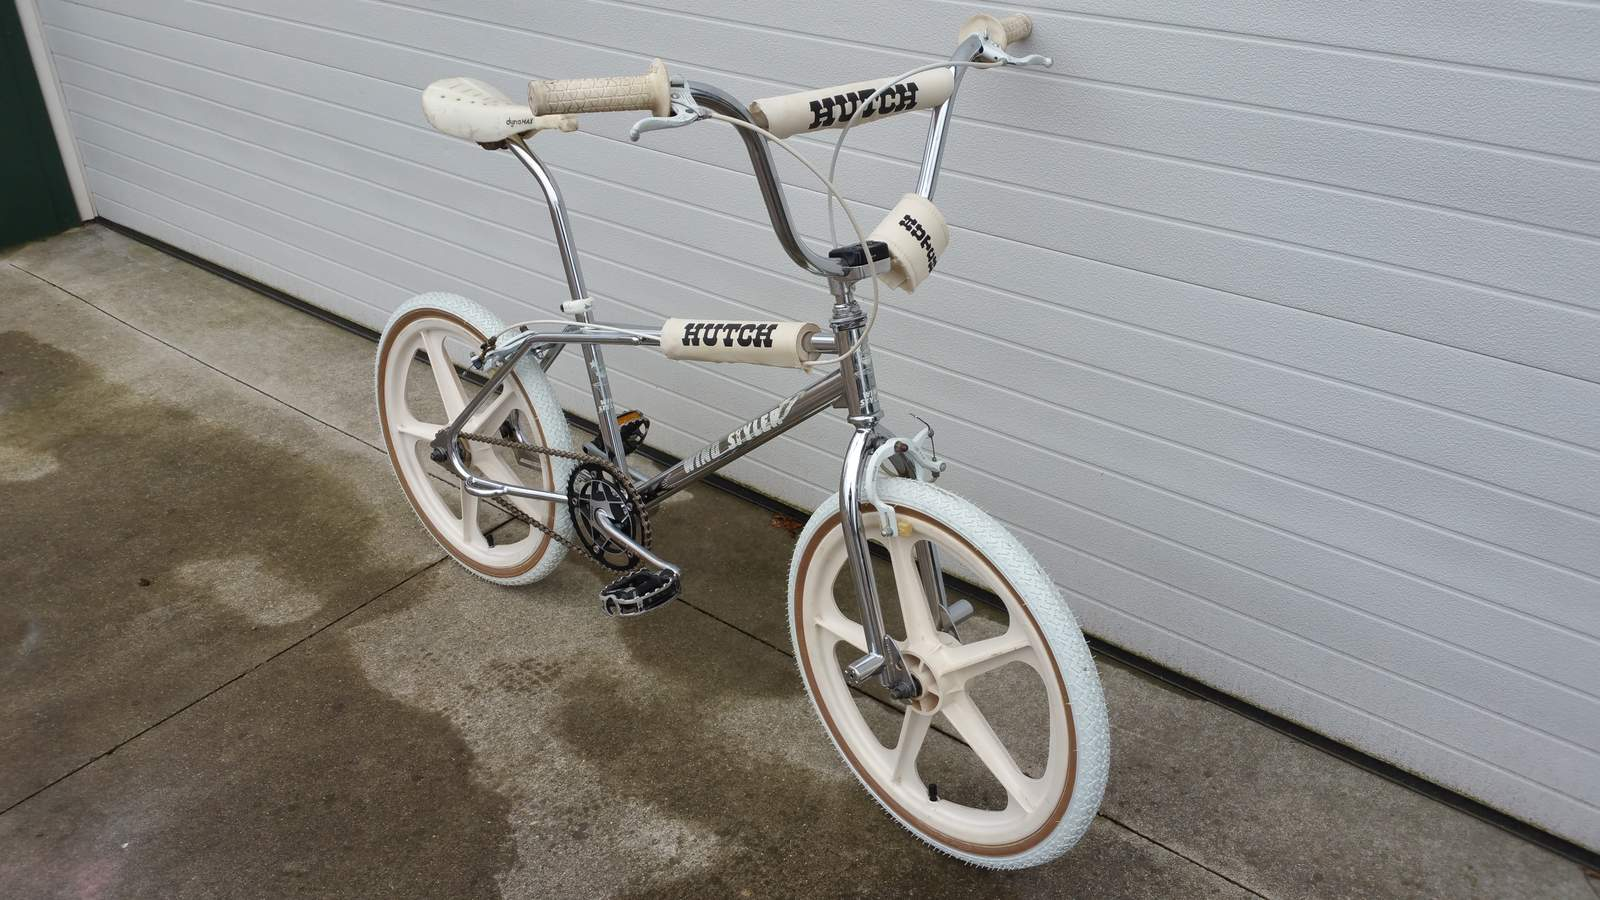 http://uploads.bmxmuseum.com/user-images/3408/20170115_14340958a1346f29.jpg